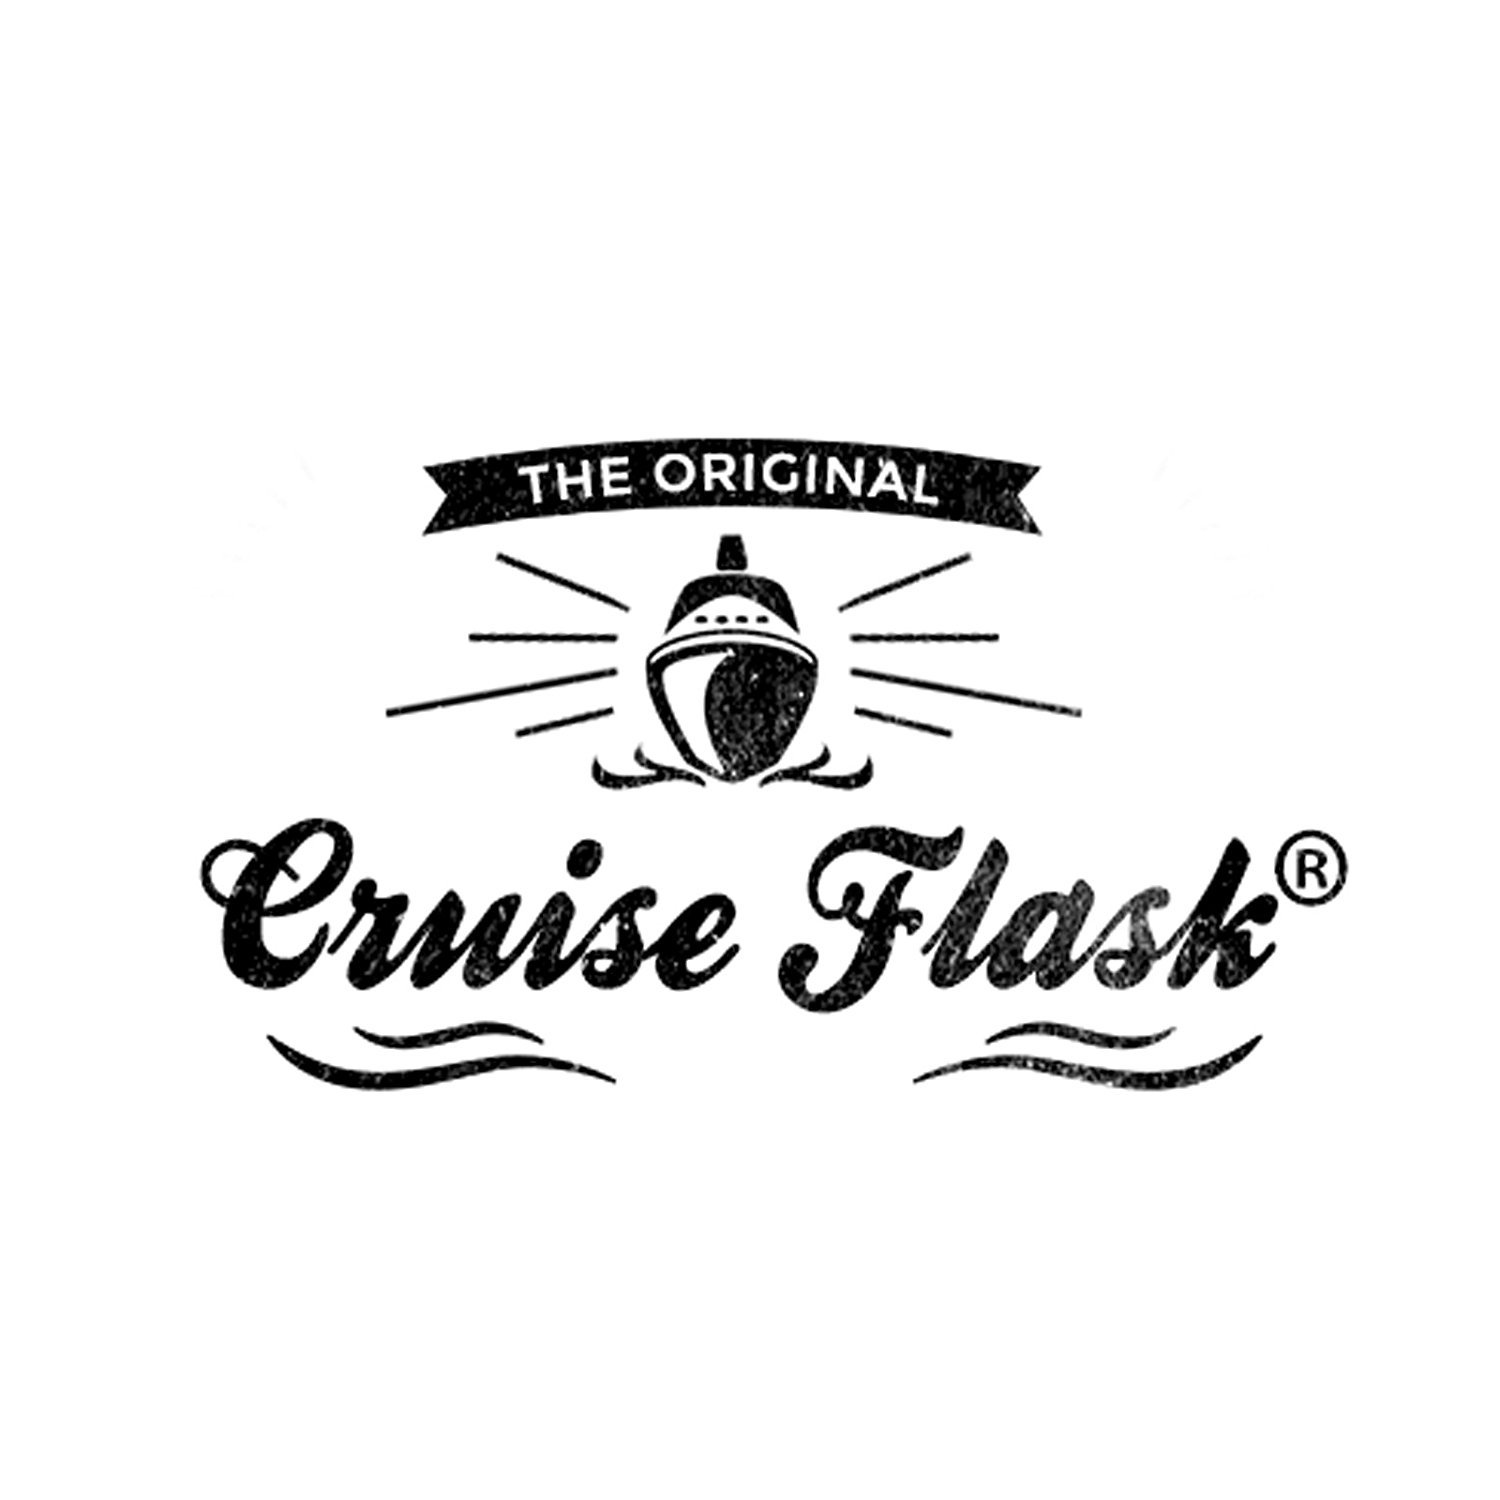 1 x 8 oz 1 funnel Sneak Alcohol Anywhere 1 x 32 oz 1 x 16 oz Concealable And Reusable Cruise Flask Kit